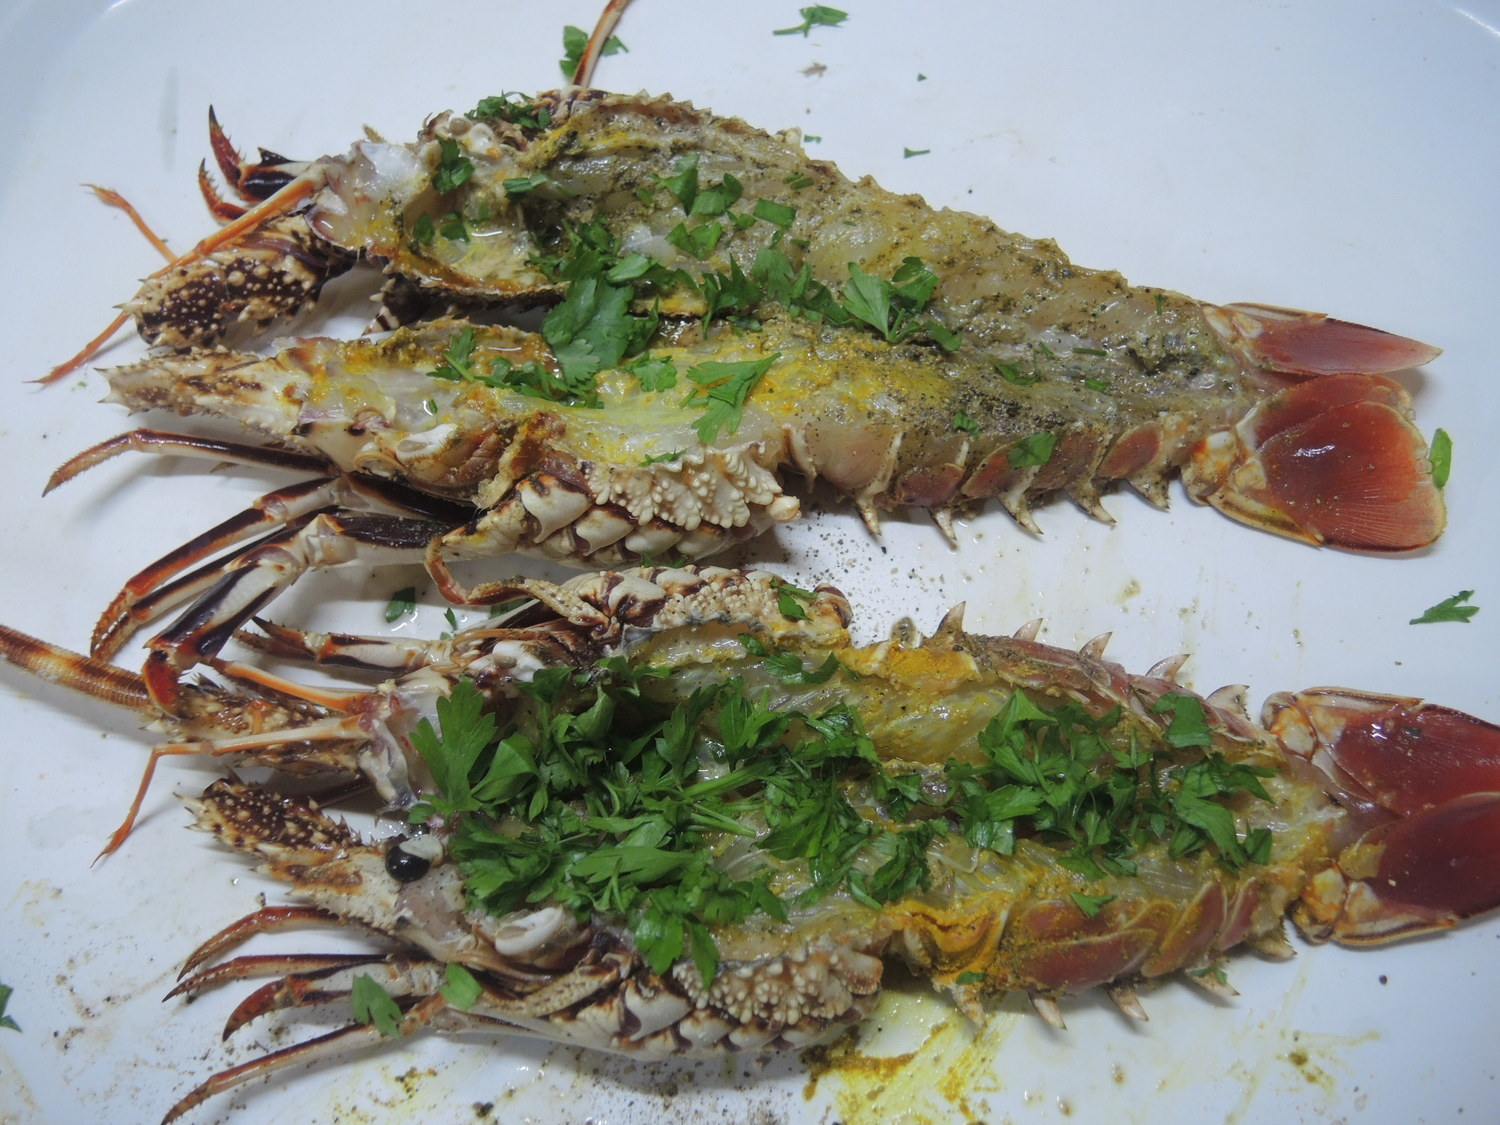 Langouste in the making